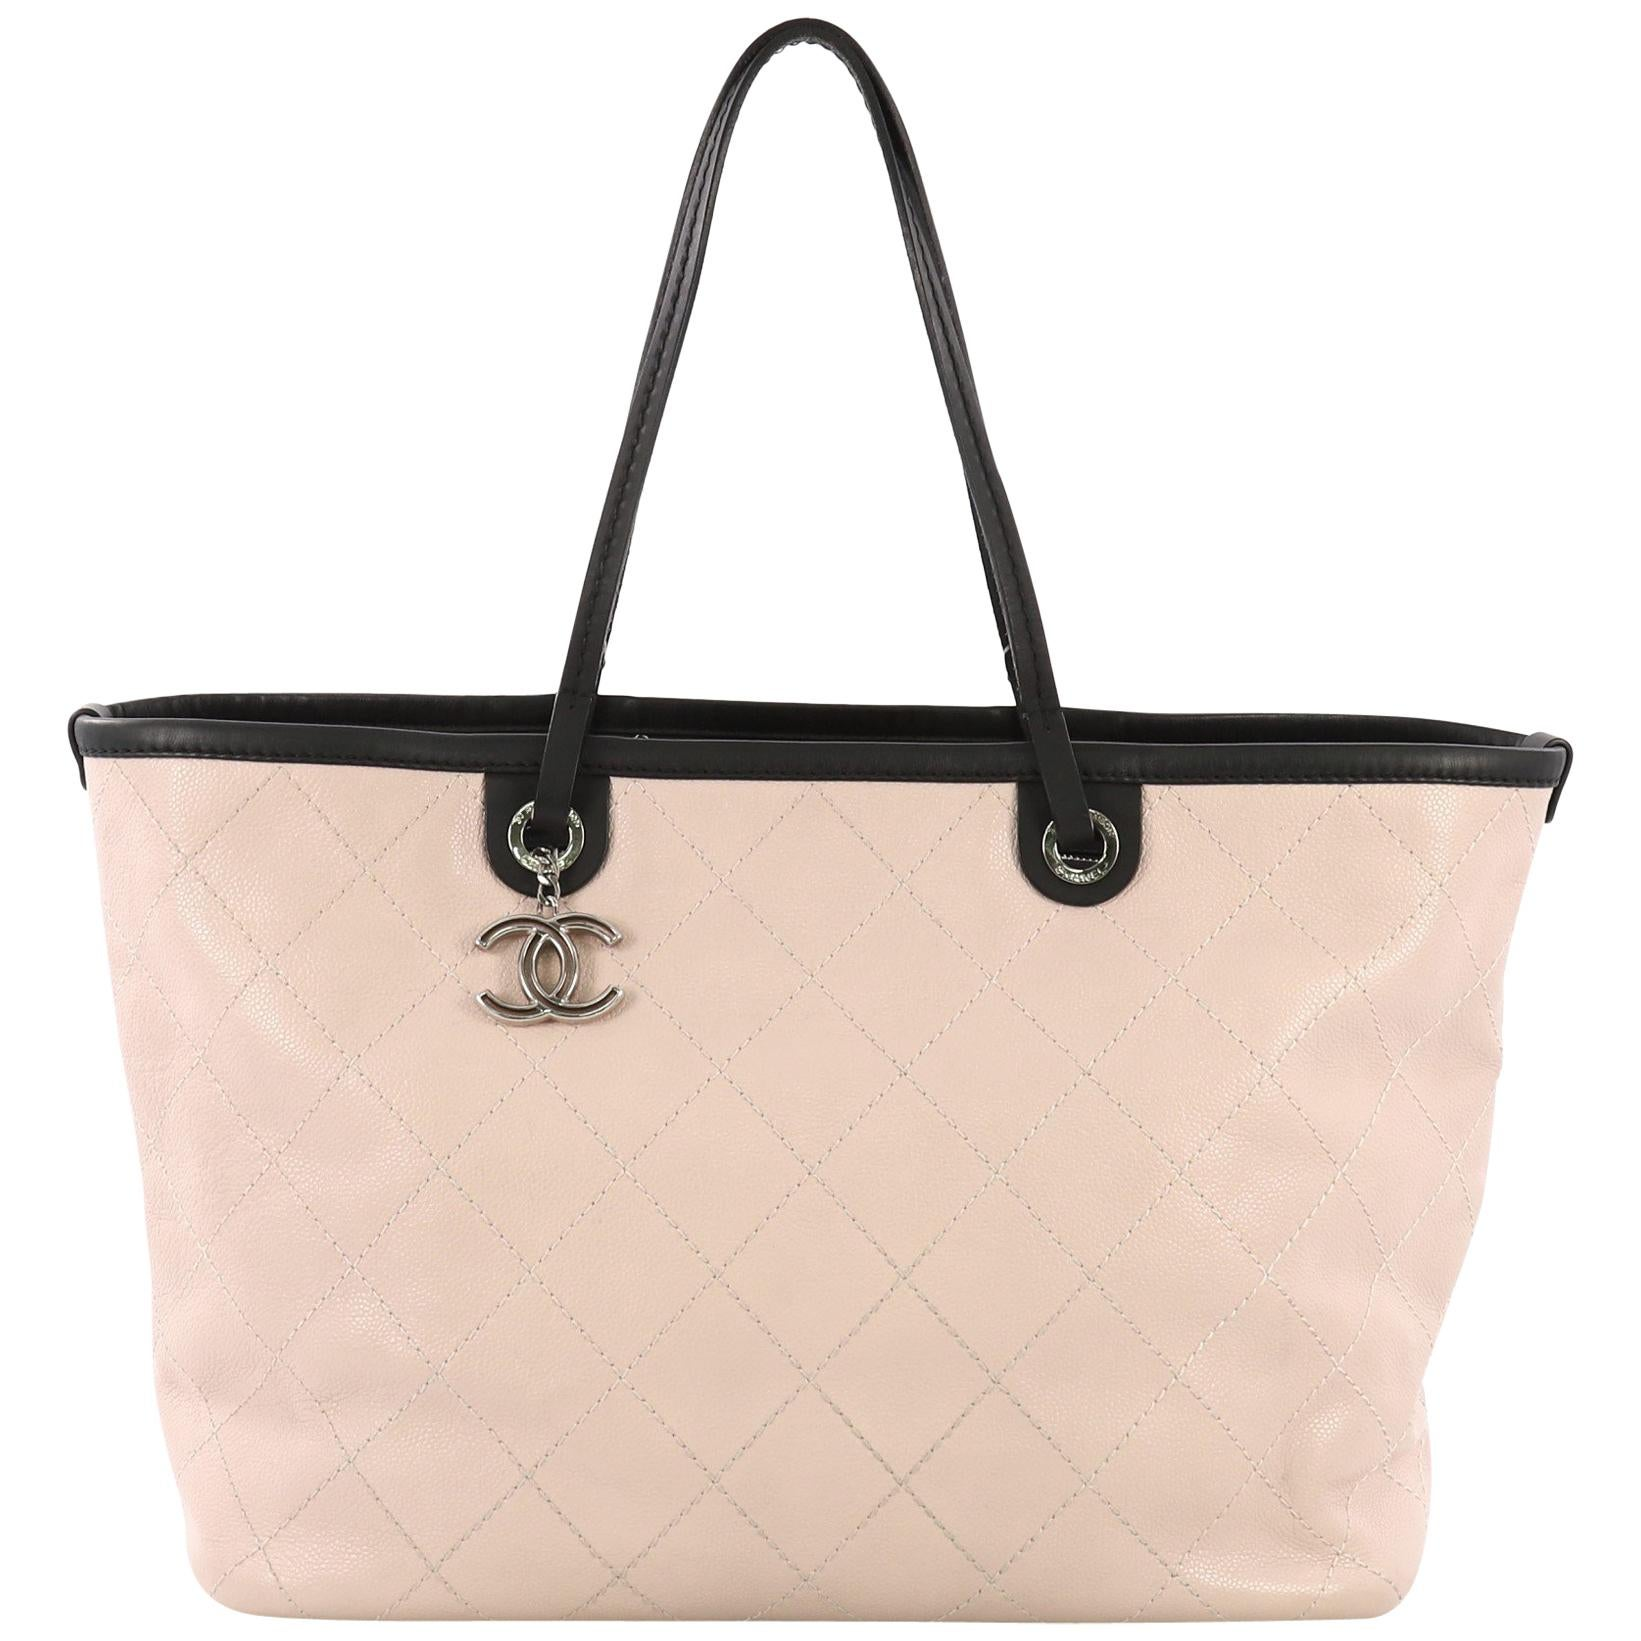 a567dcbe71b7 Vintage Chanel Tote Bags - 604 For Sale at 1stdibs - Page 3